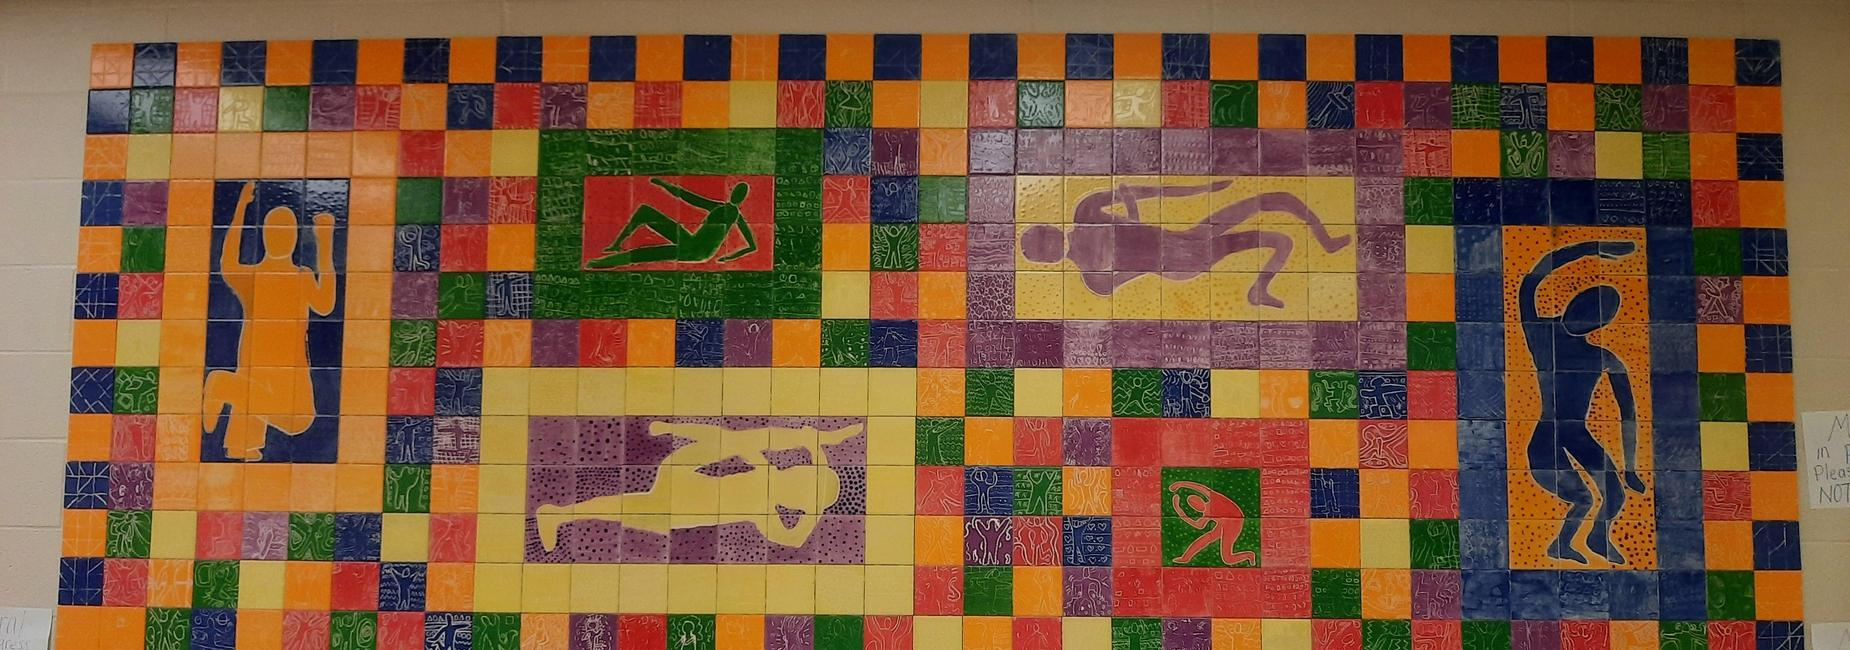 tile mural made by students